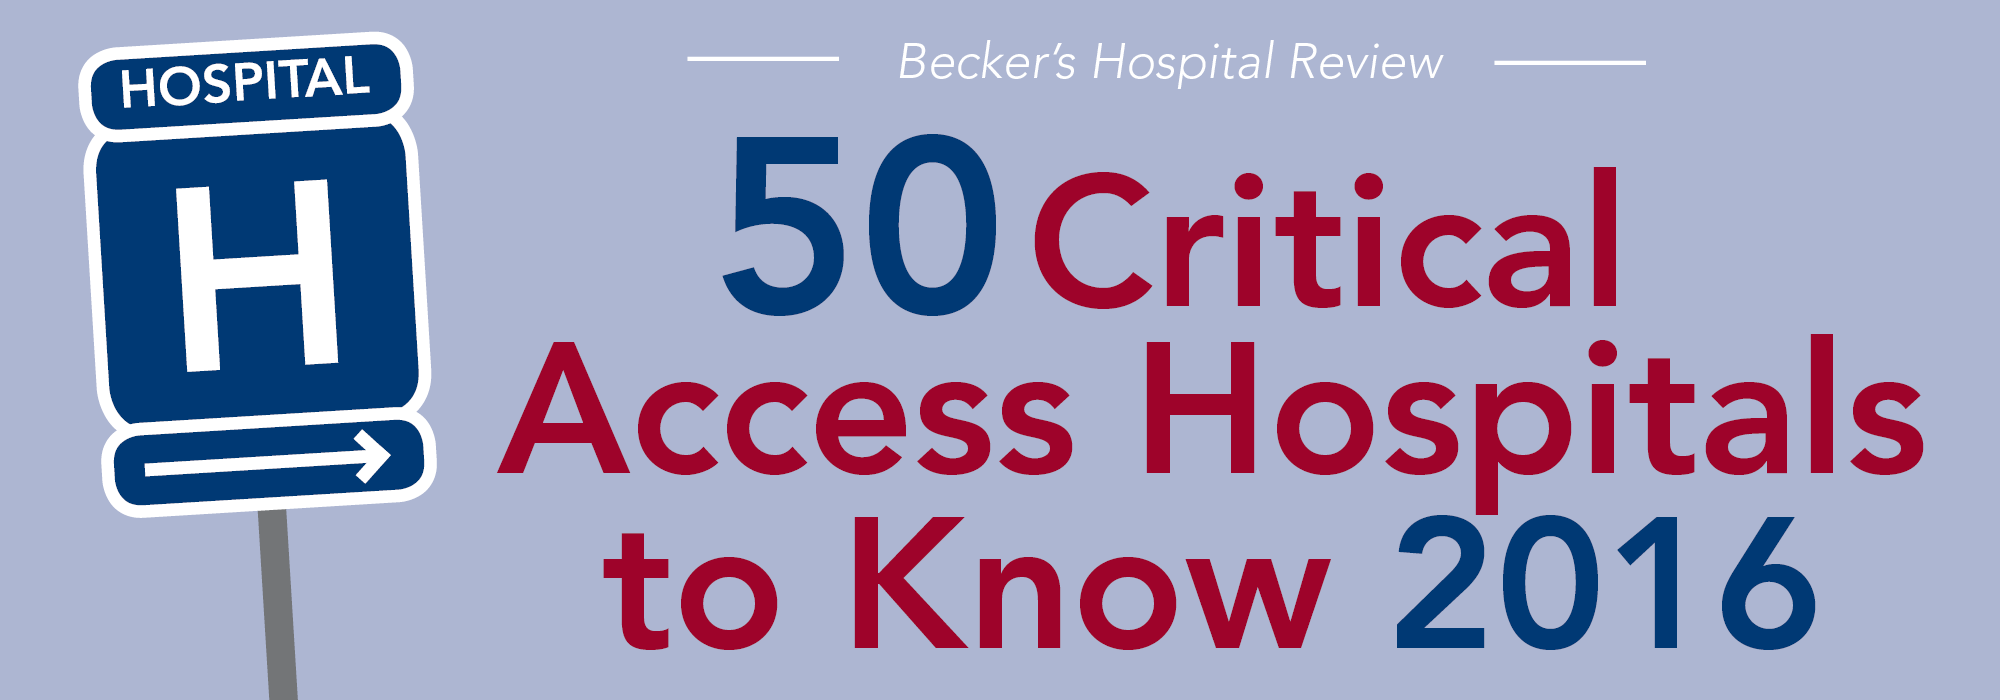 50 Critical Access Hospitals to Know 2016